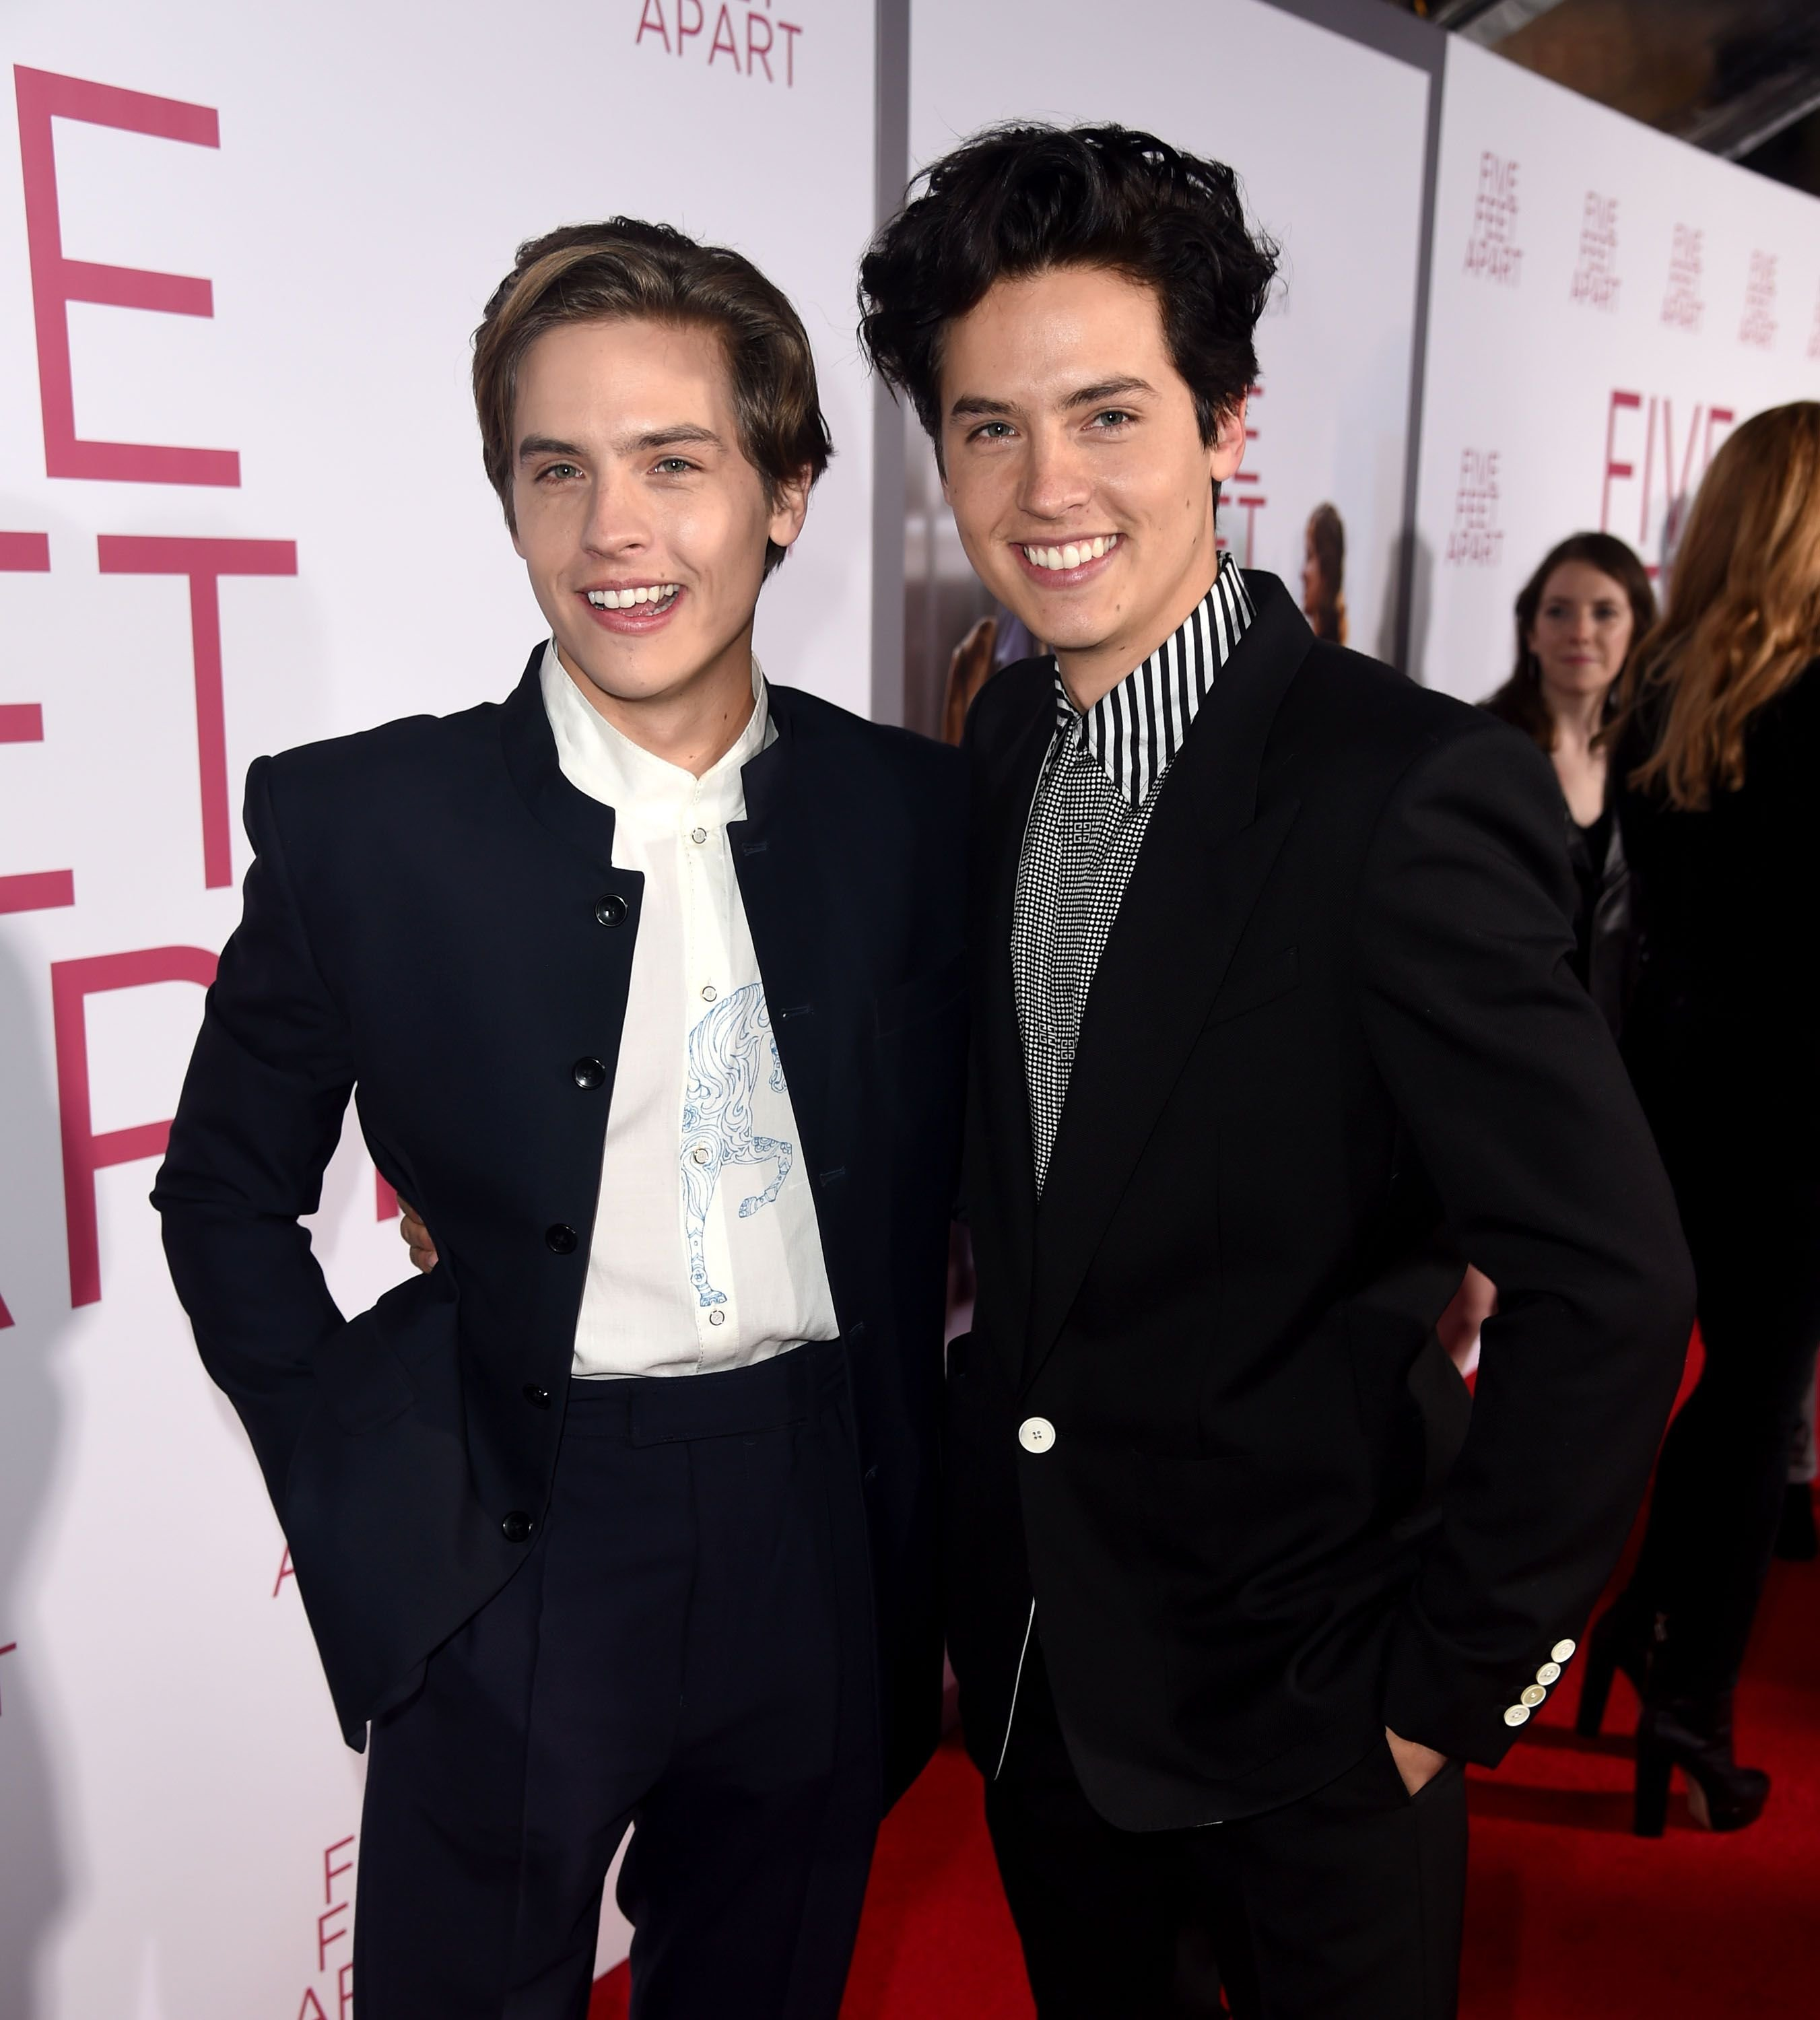 """Dylan Sprouse and Cole Sprouse at the premiere of """"Five Feet Apart"""" in March 2019 in Los Angeles 